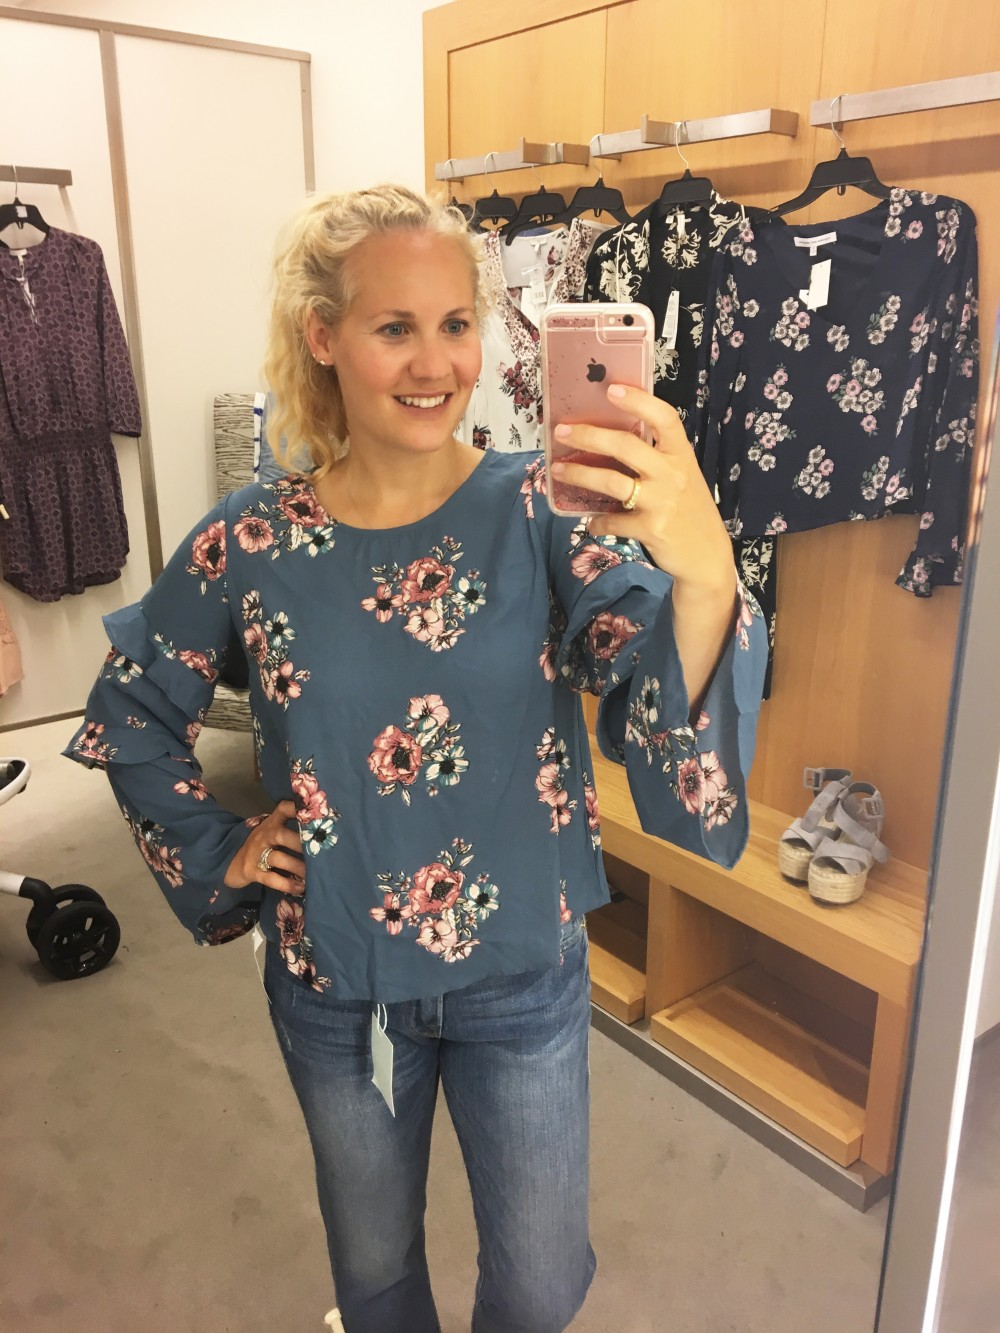 Dressing Room Diaries- Nordstrom Anniversary Sale-Fall Tops-Blogger Picks for the NSale-Nordstrom Sale-Fall Style-Fall Fashion 2017-Have Need Want 5